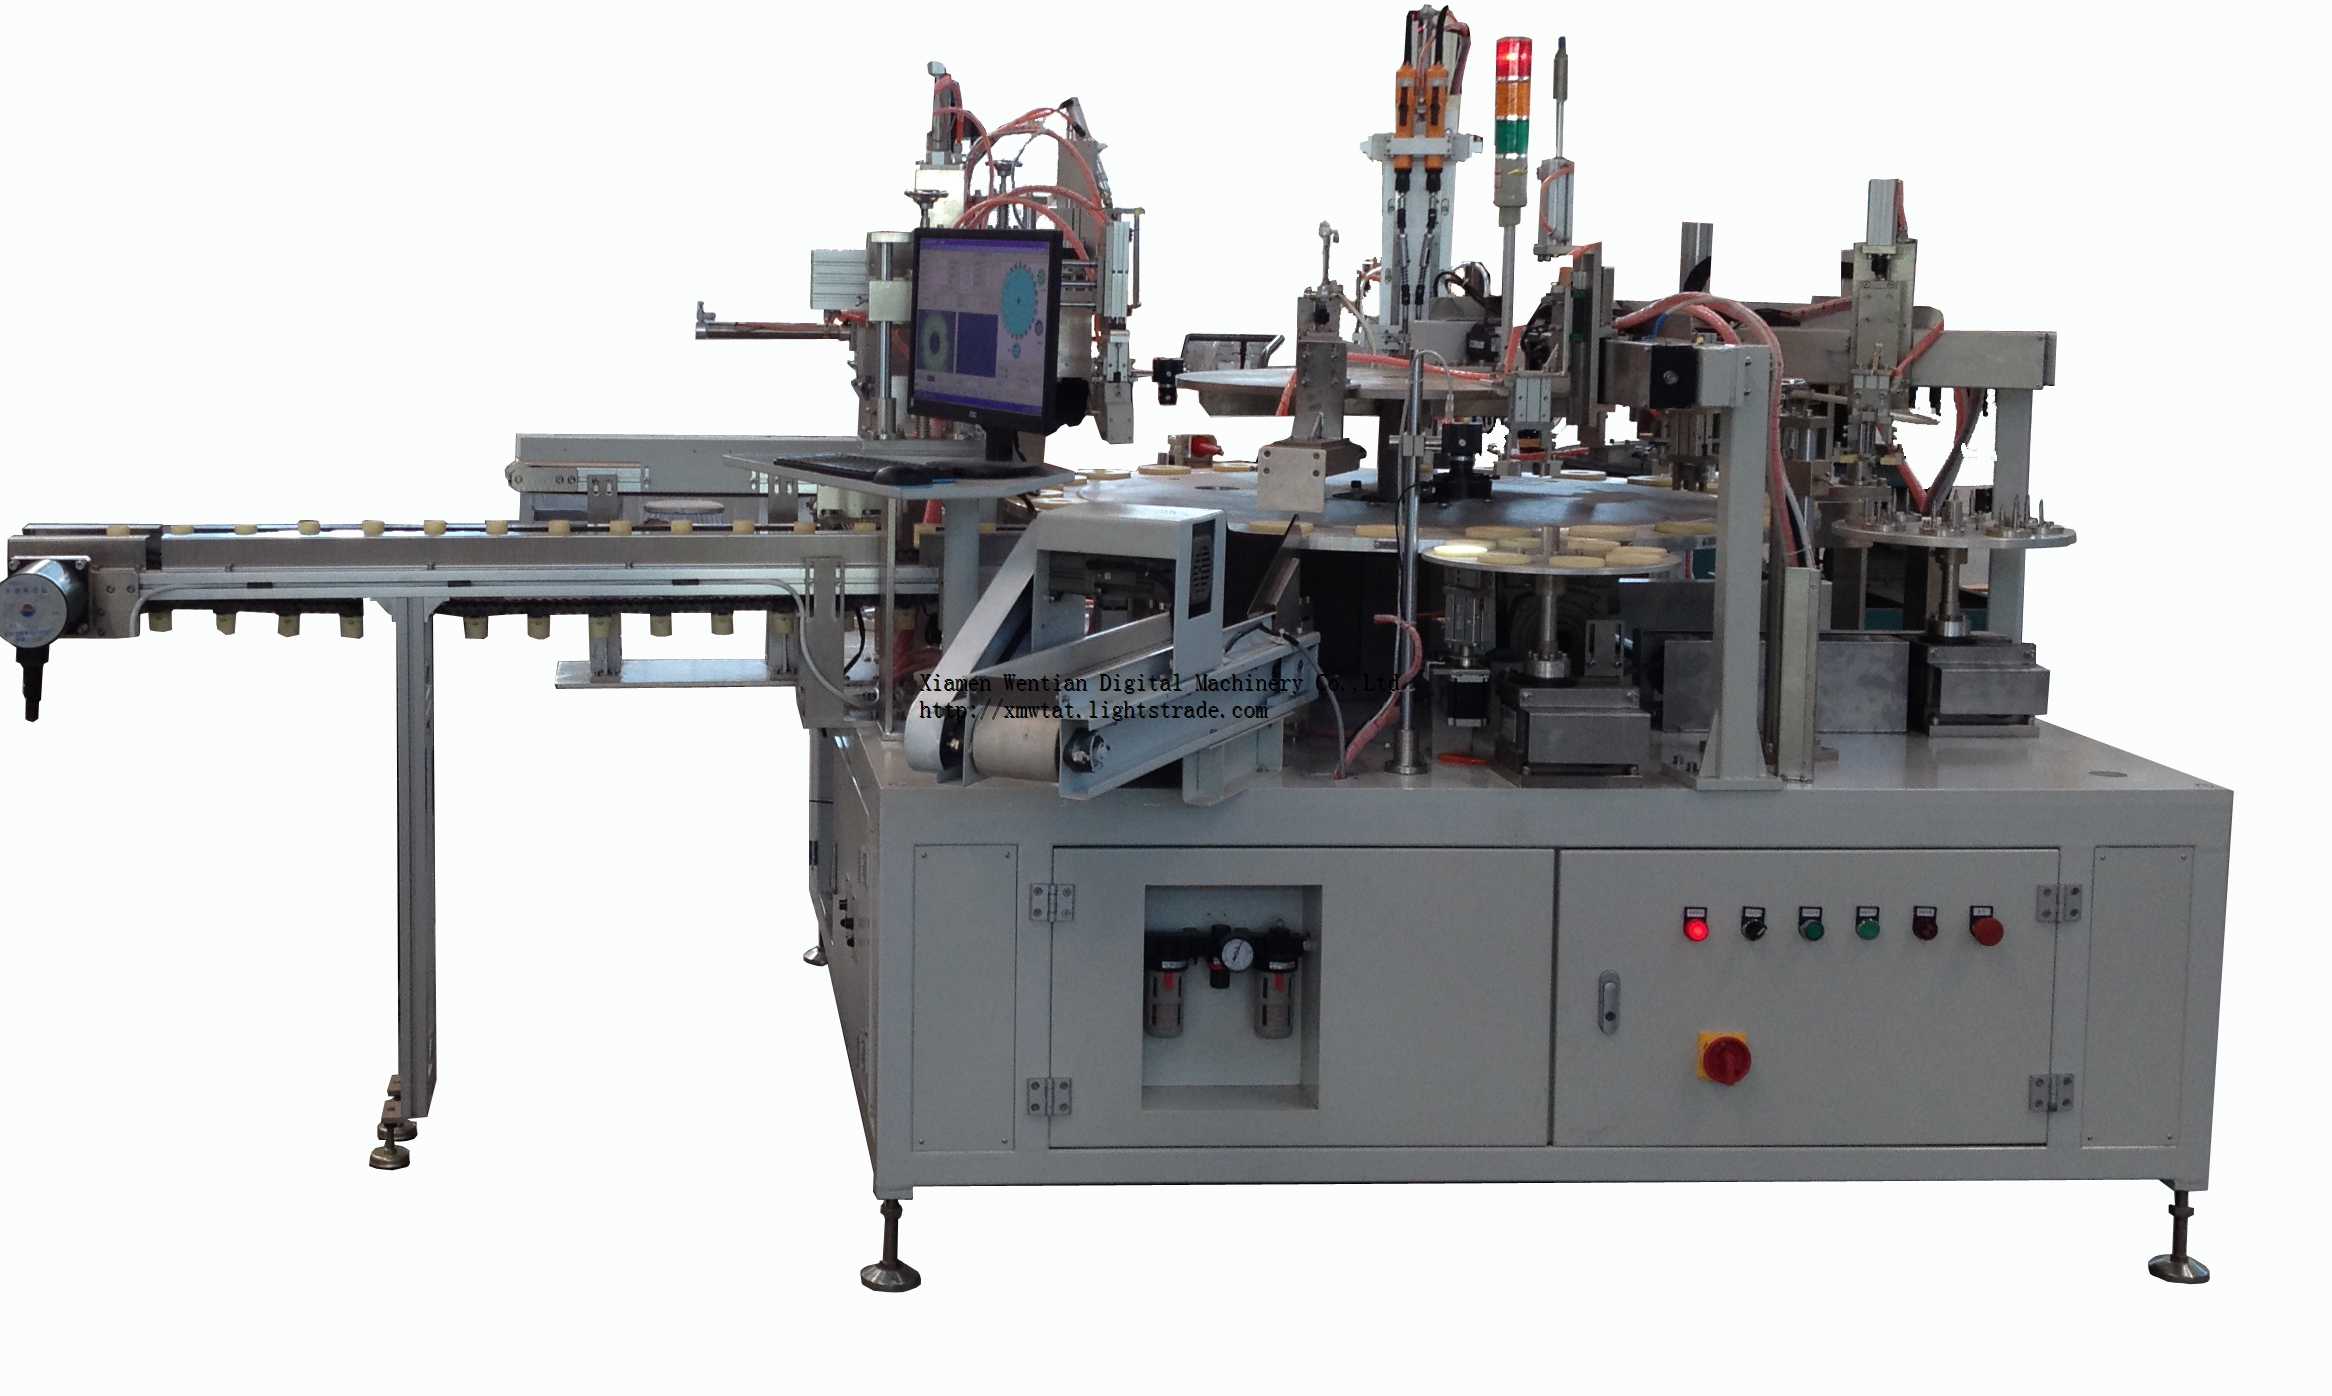 Driver and PCB assembly machine